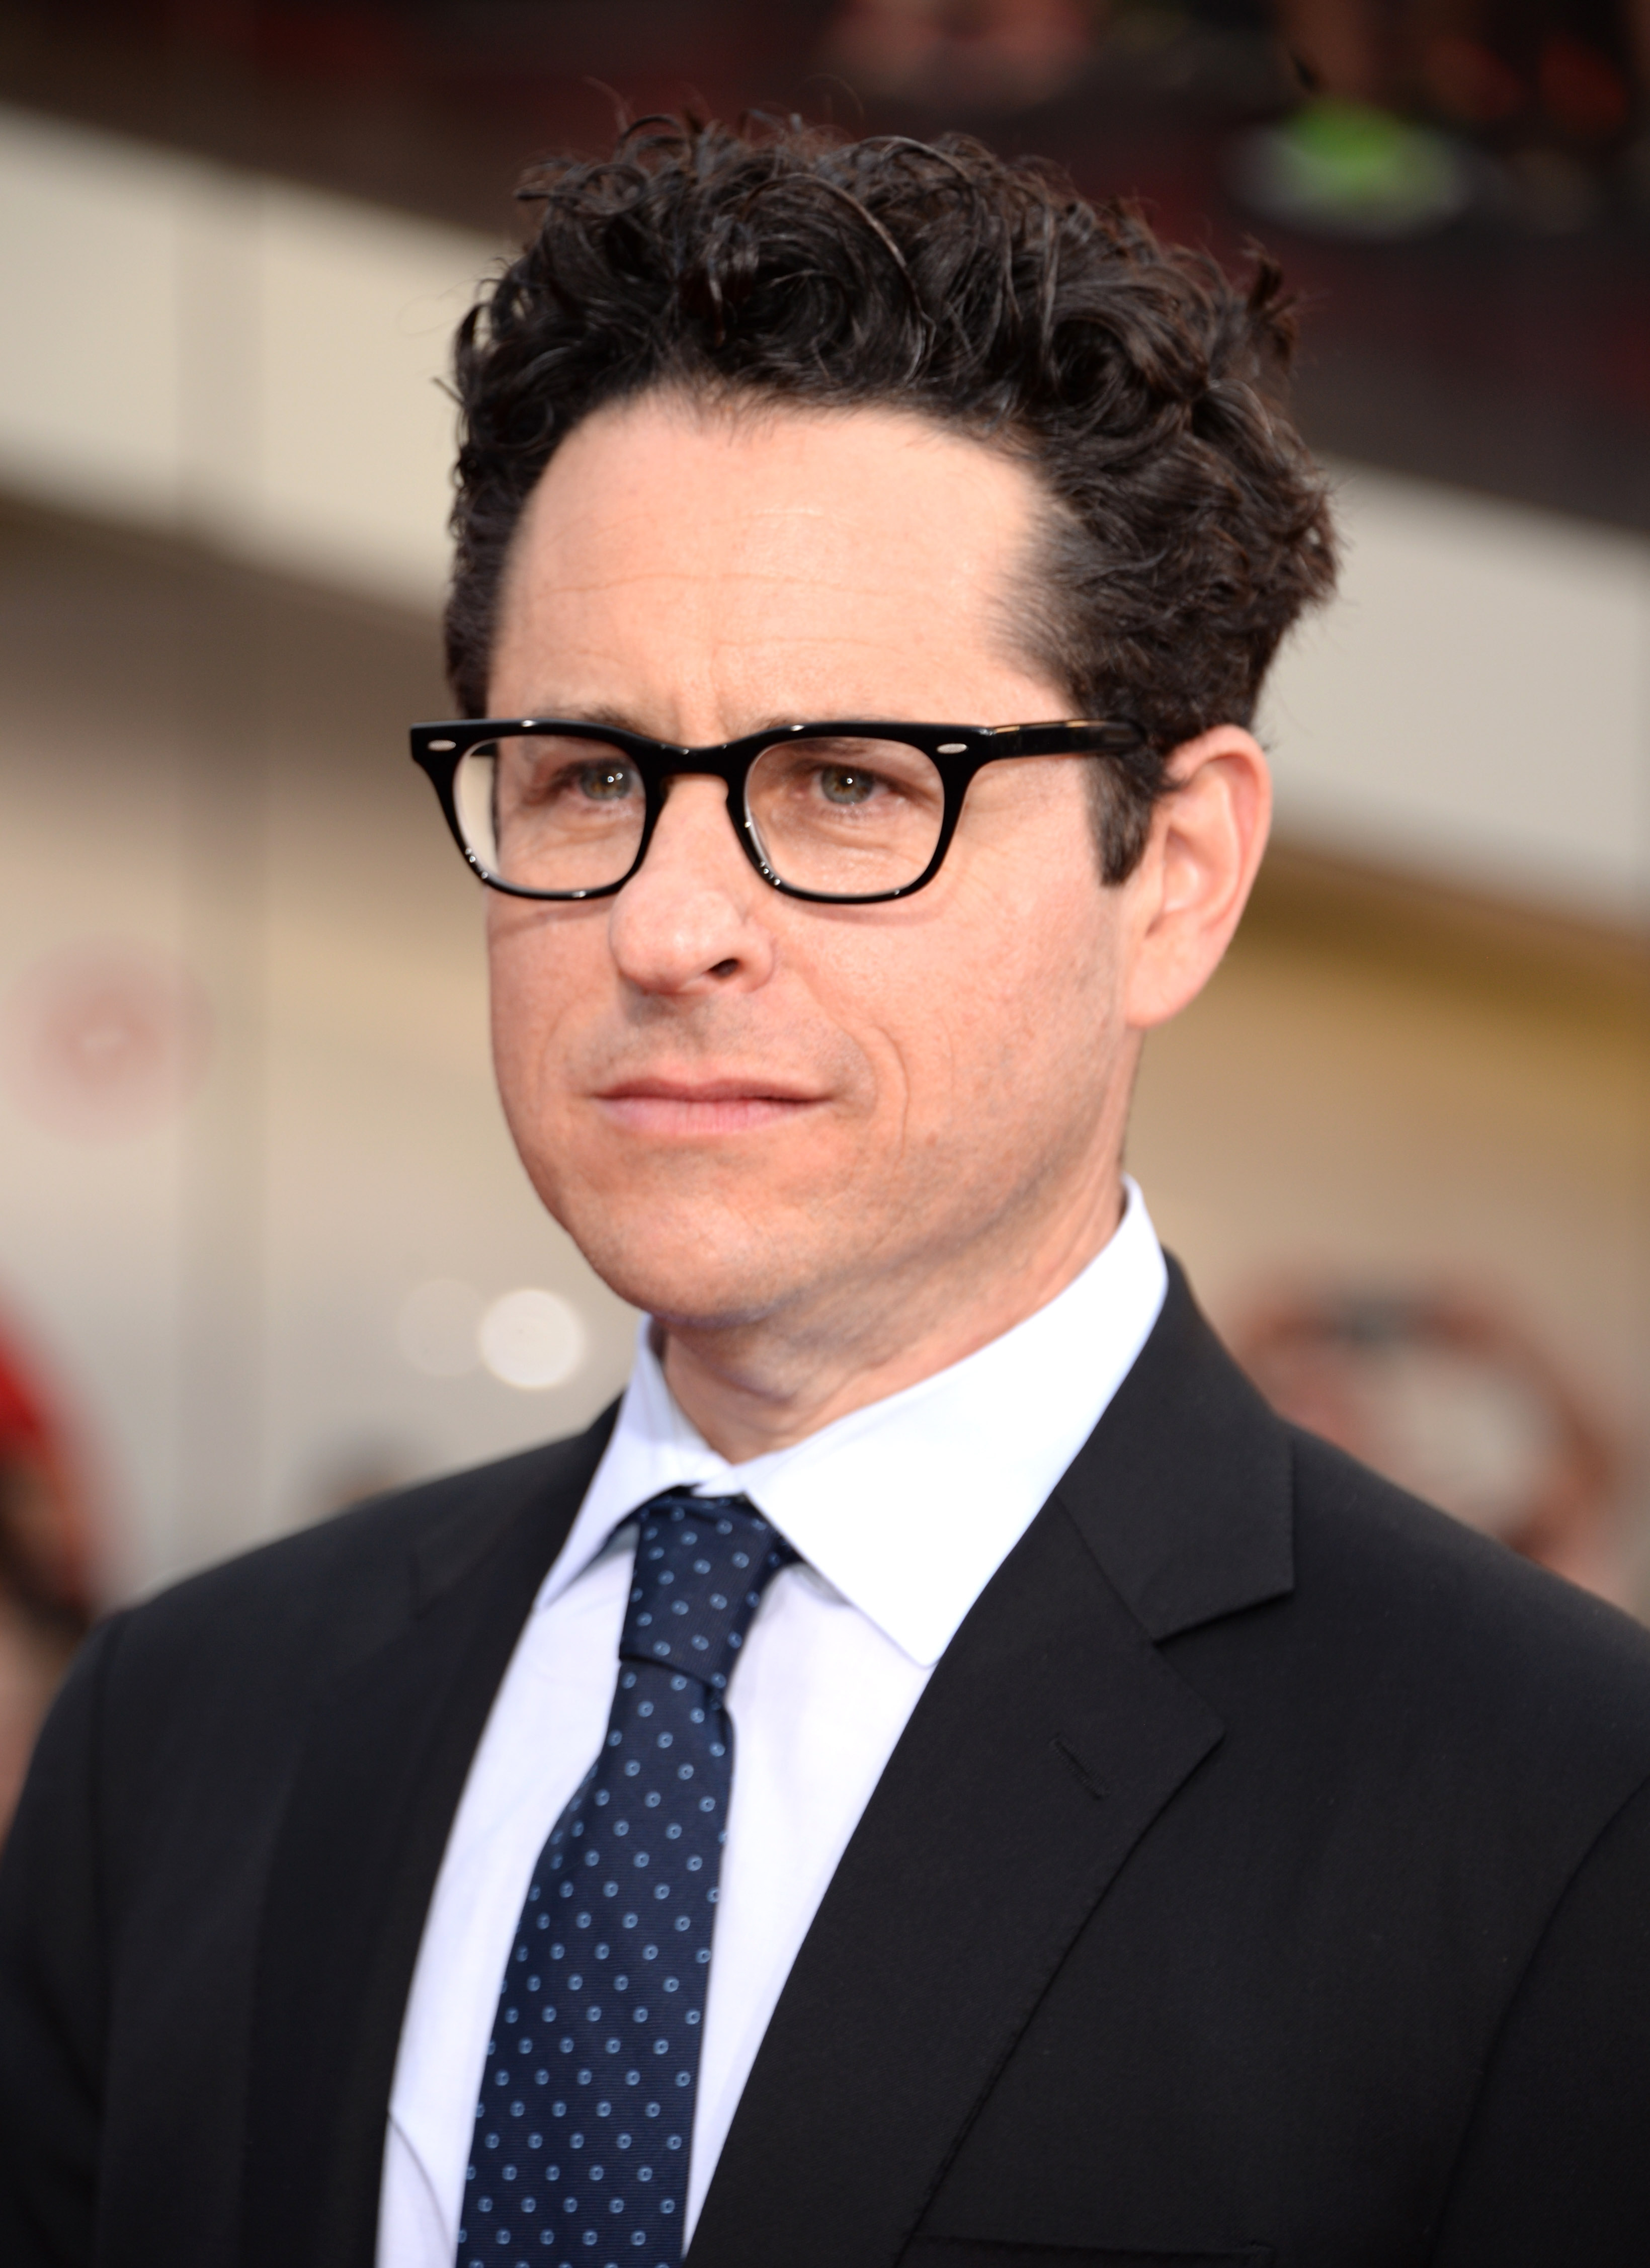 J.J. Abrams attends the New York premiere of  Mission Impossible: Rogue Nation  at Times Square on July 27, 2015 in New York City.  (Photo by Kevin Mazur/WireImage)